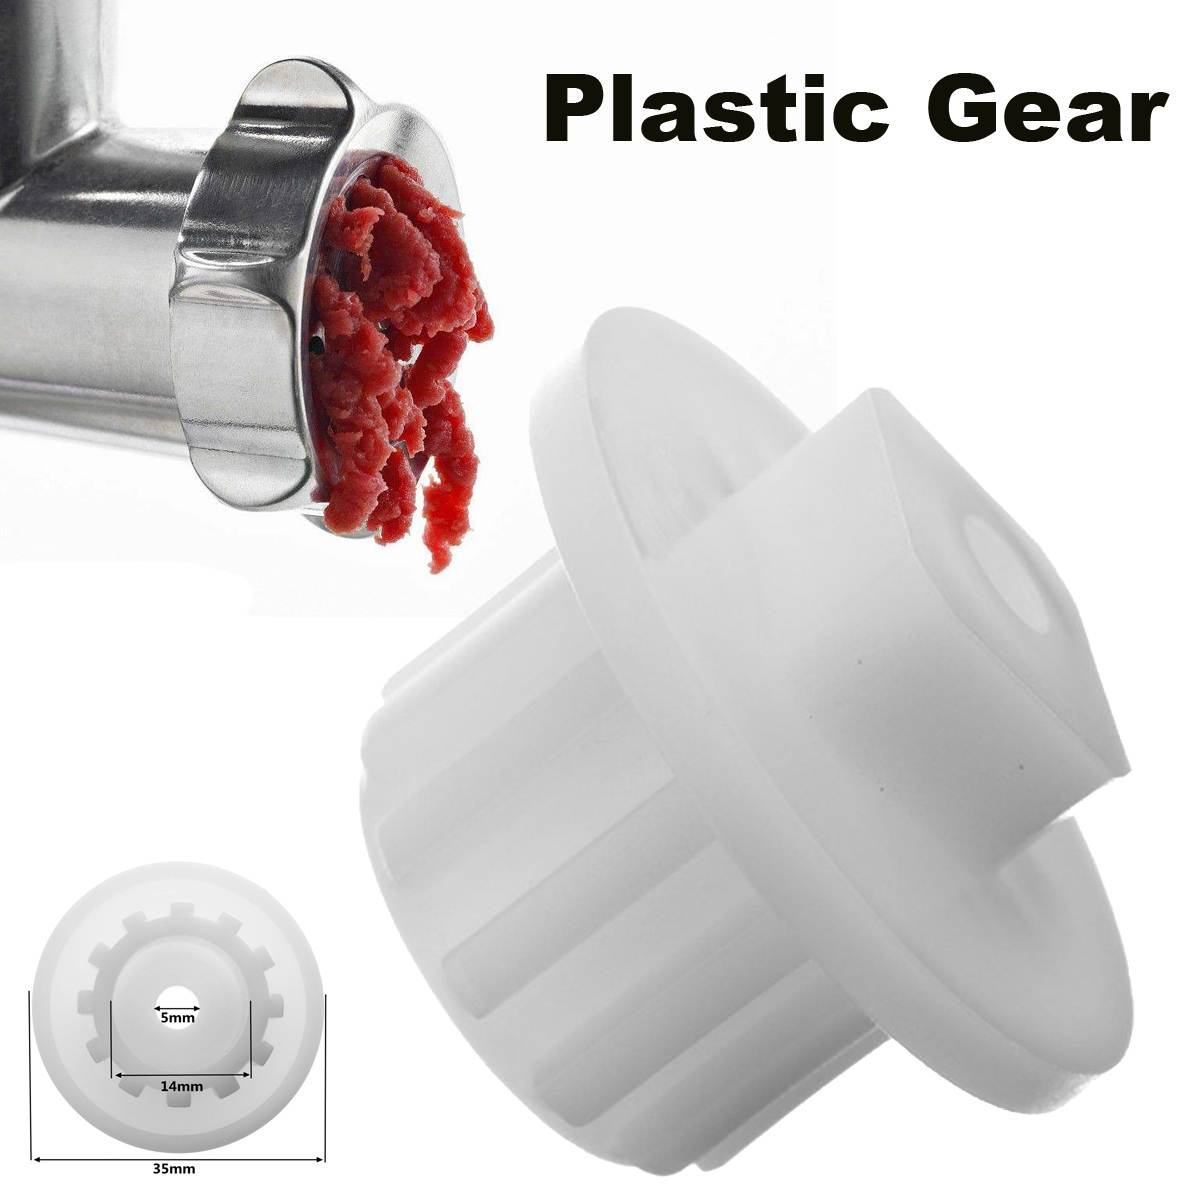 2019 New Arrival Meat Grinder Parts Plastic Gear Fit For Zelmer HR7752/HR7754/HR7768/HR2724/HR2725 Kitchen Appliance Parts